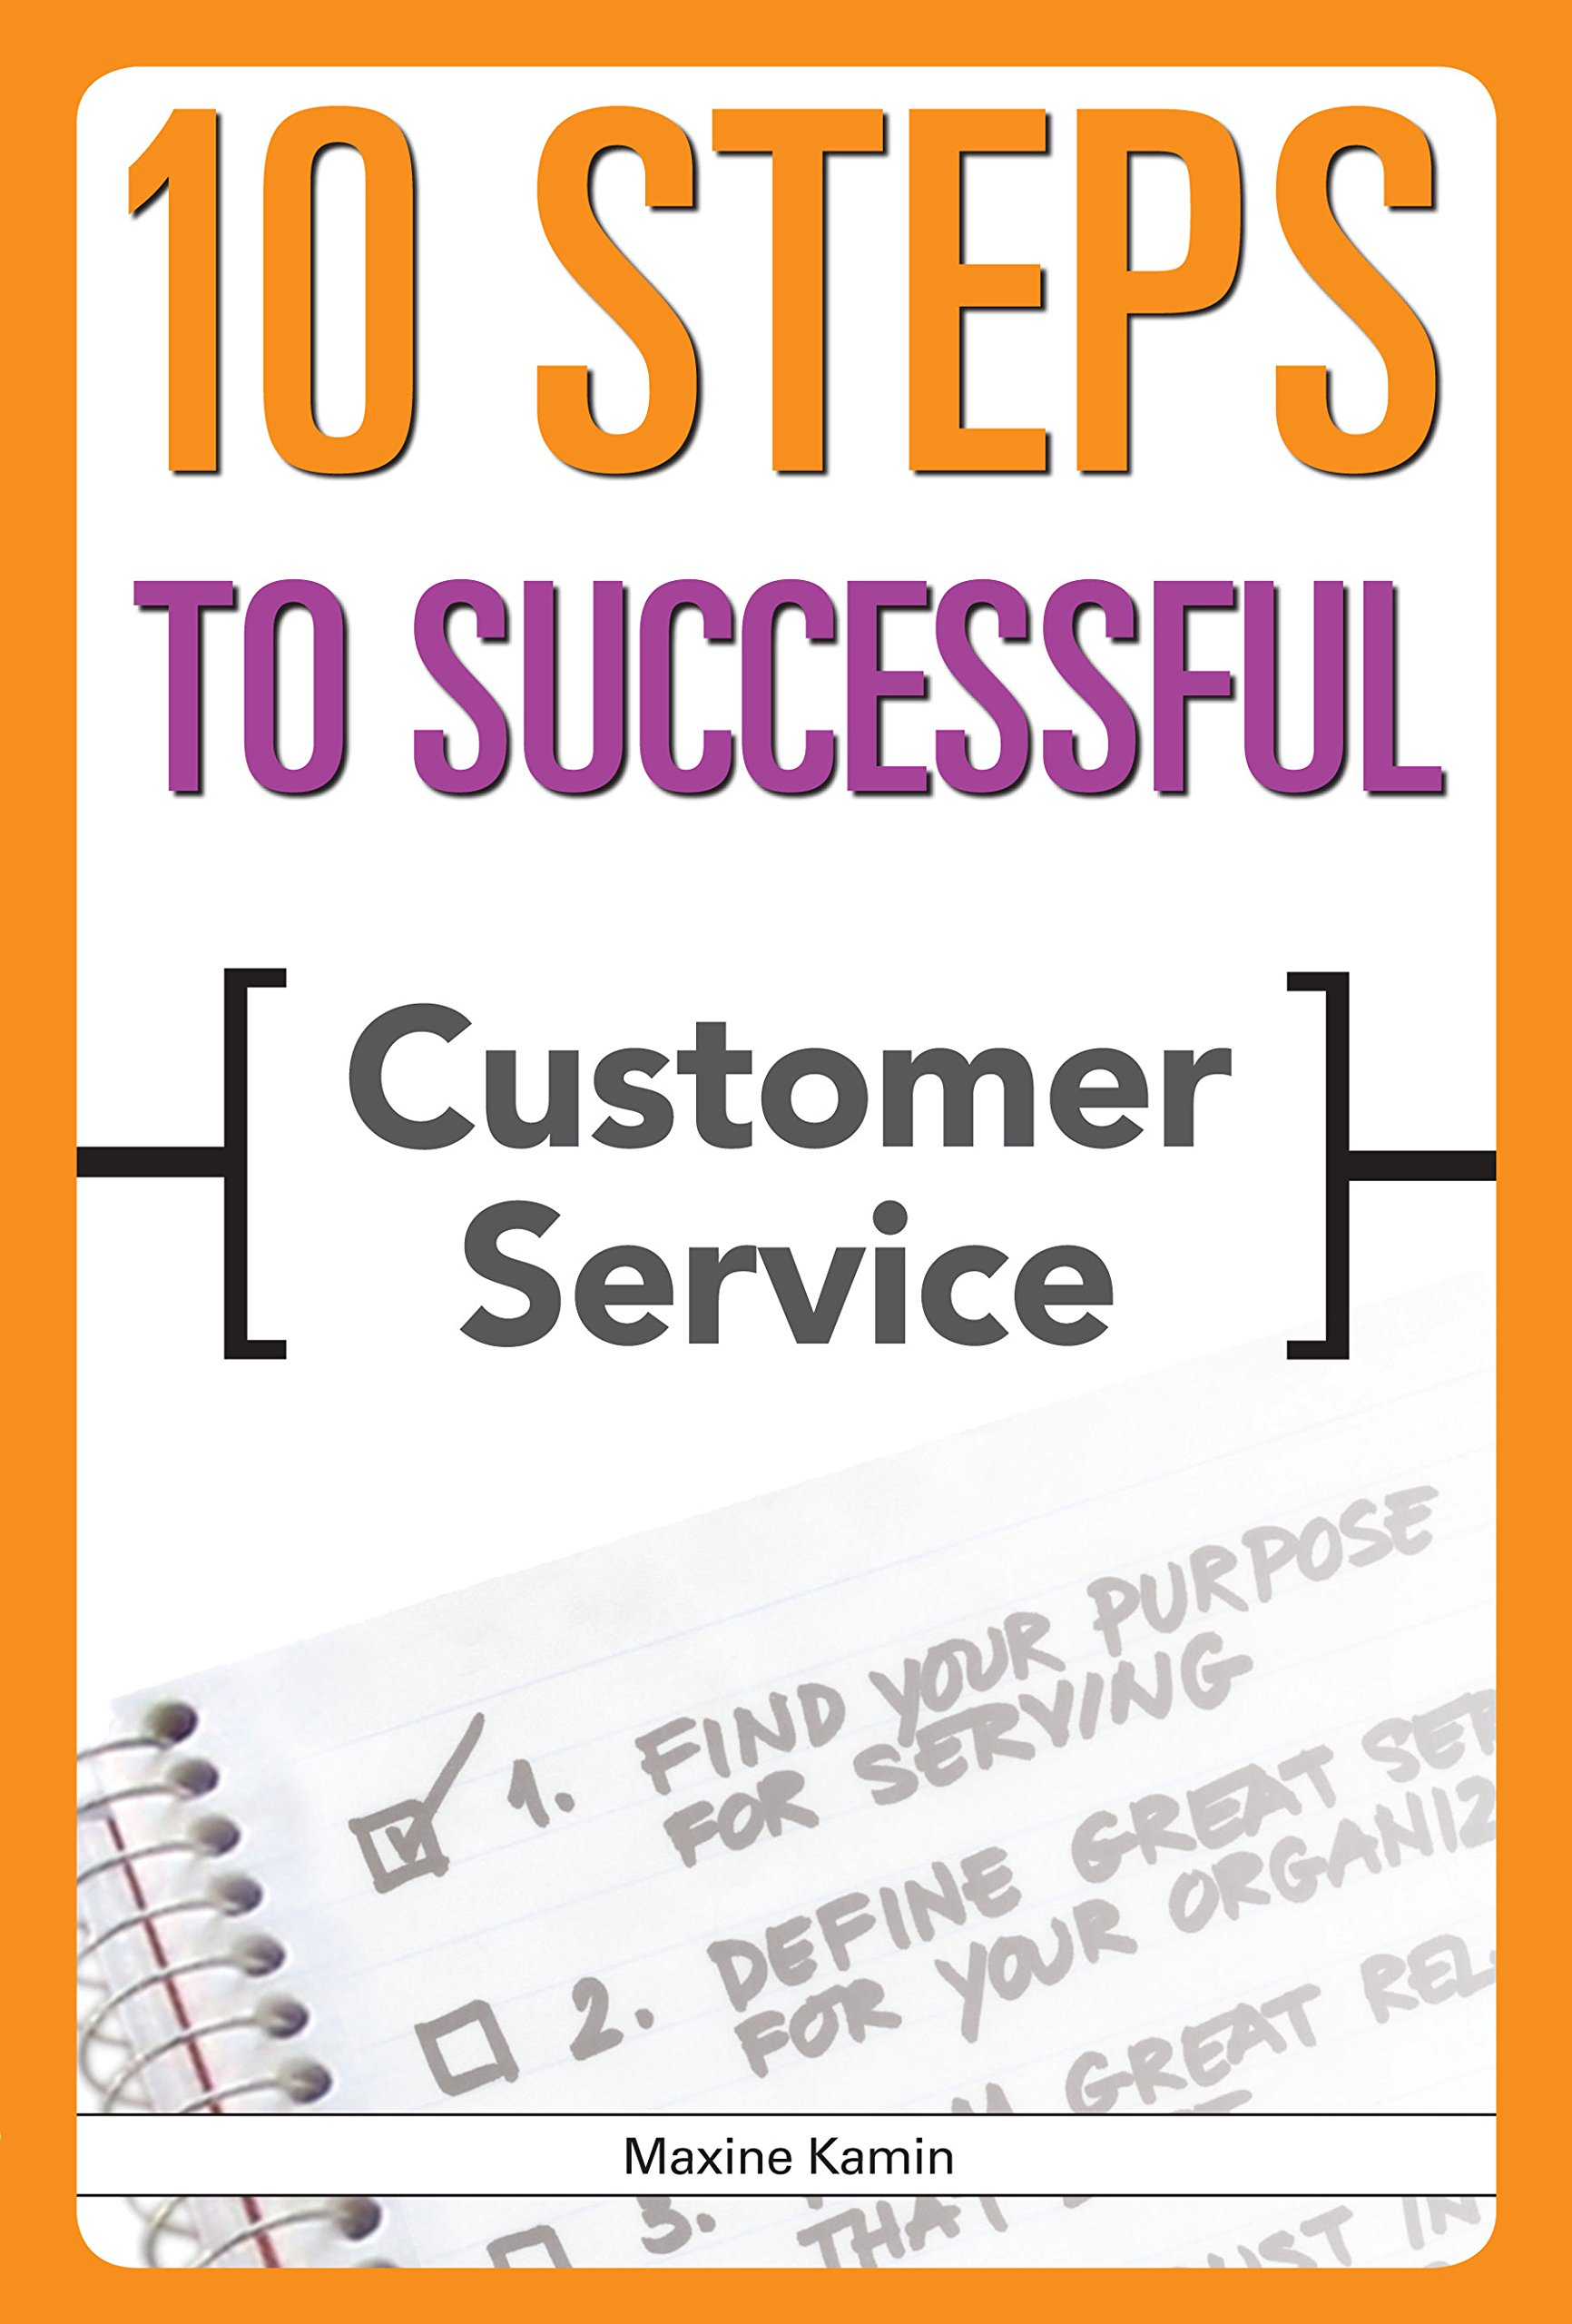 10 Steps to Successful Customer Service